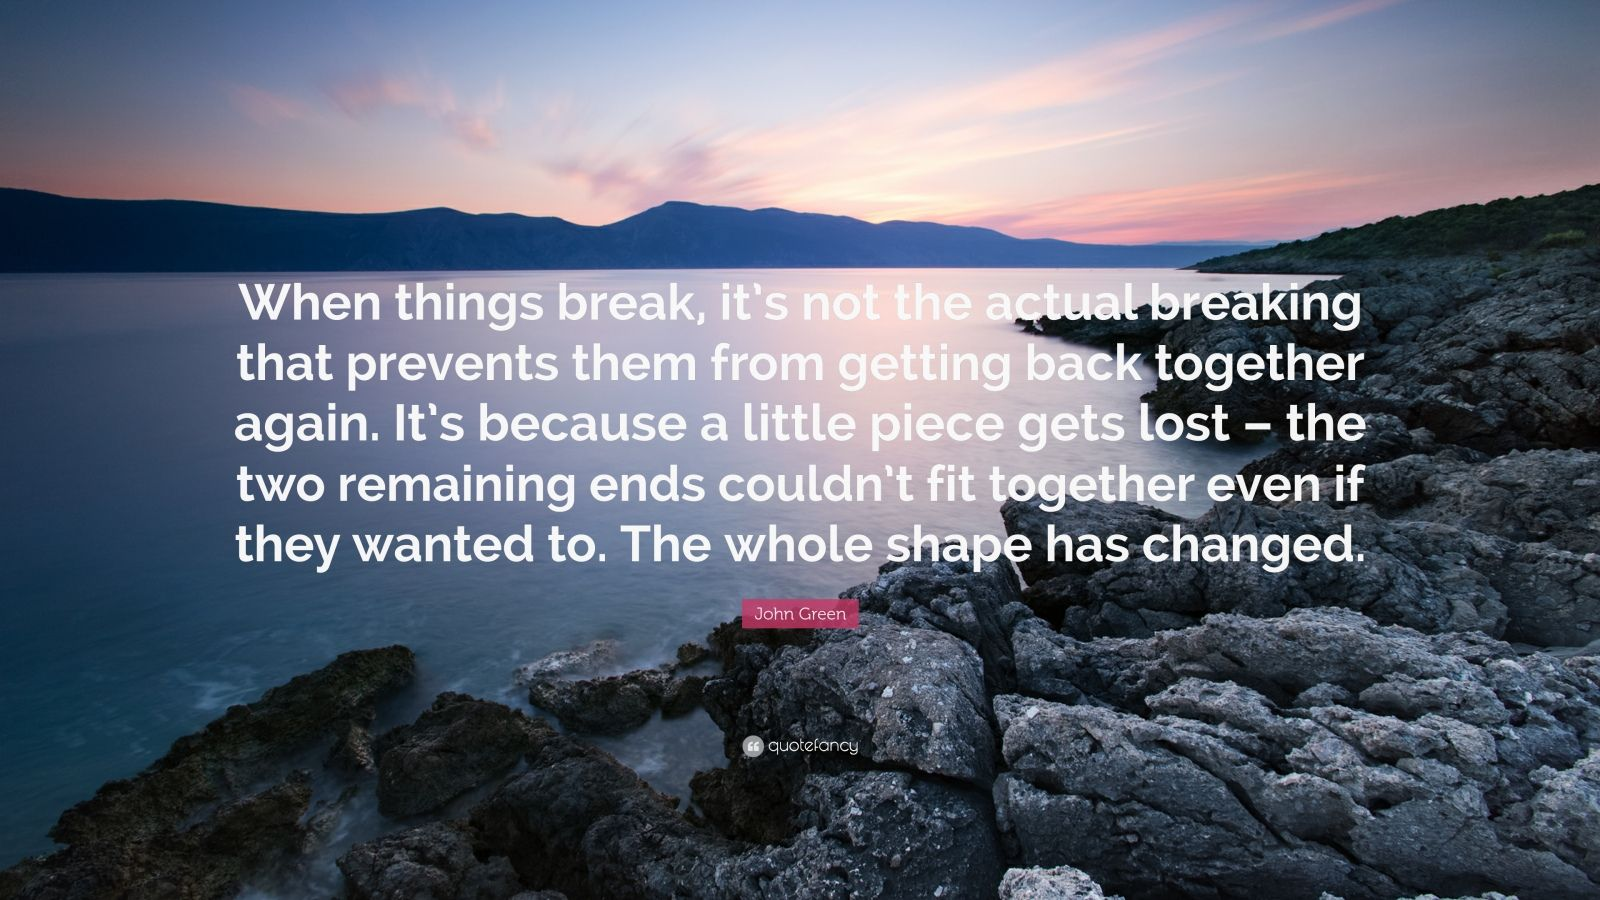 """John Green Quote: """"When things break, it's not the actual breaking that prevents them from getting back together again. It's because a little piece gets lost – the two remaining ends couldn't fit together even if they wanted to. The whole shape has changed."""""""